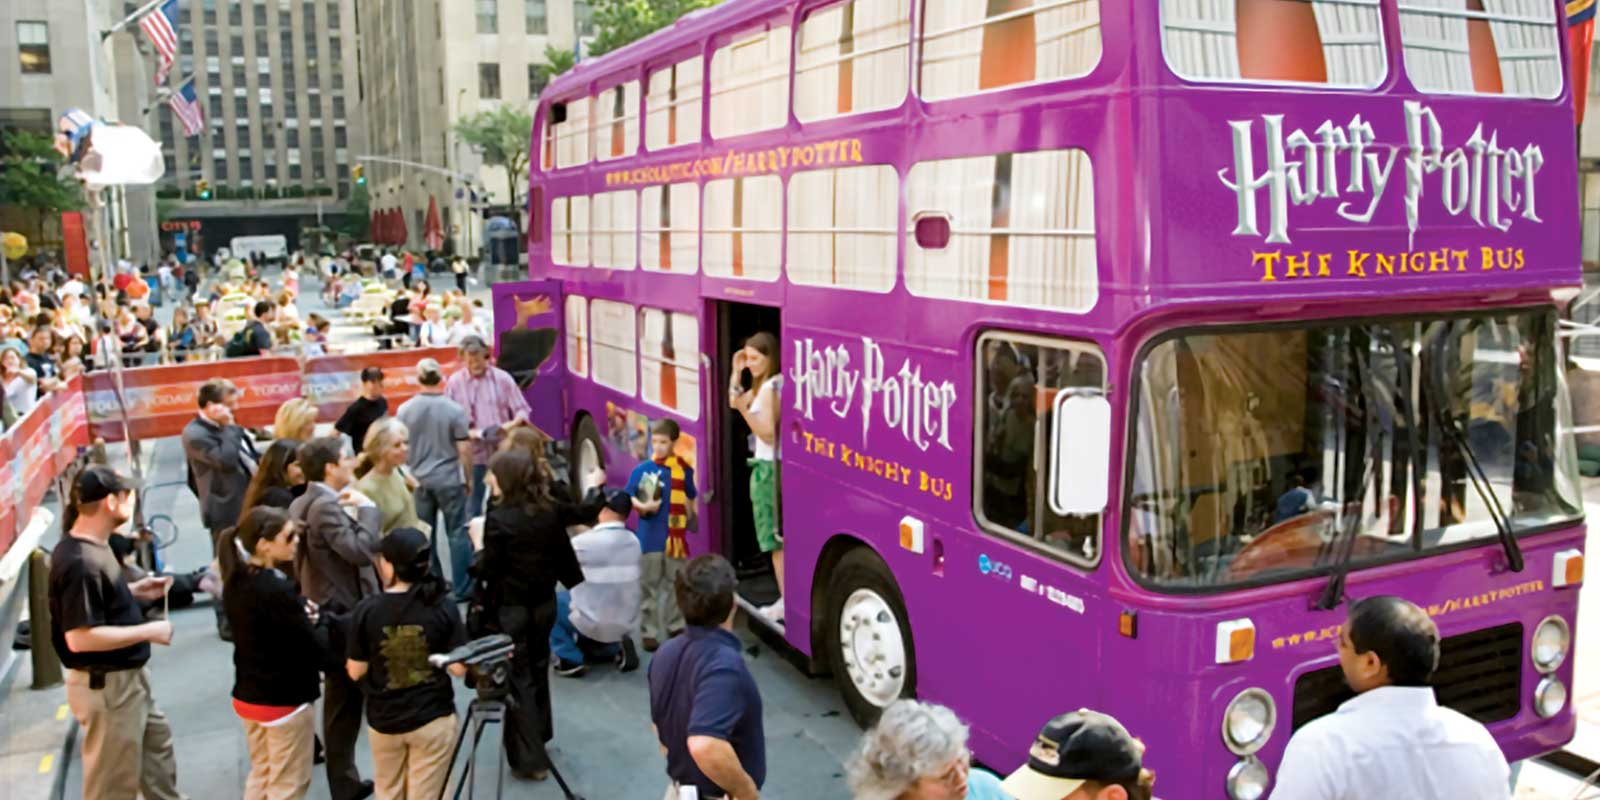 30' ENGLISH BUS DOUBLE DECKER BOOK TOUR